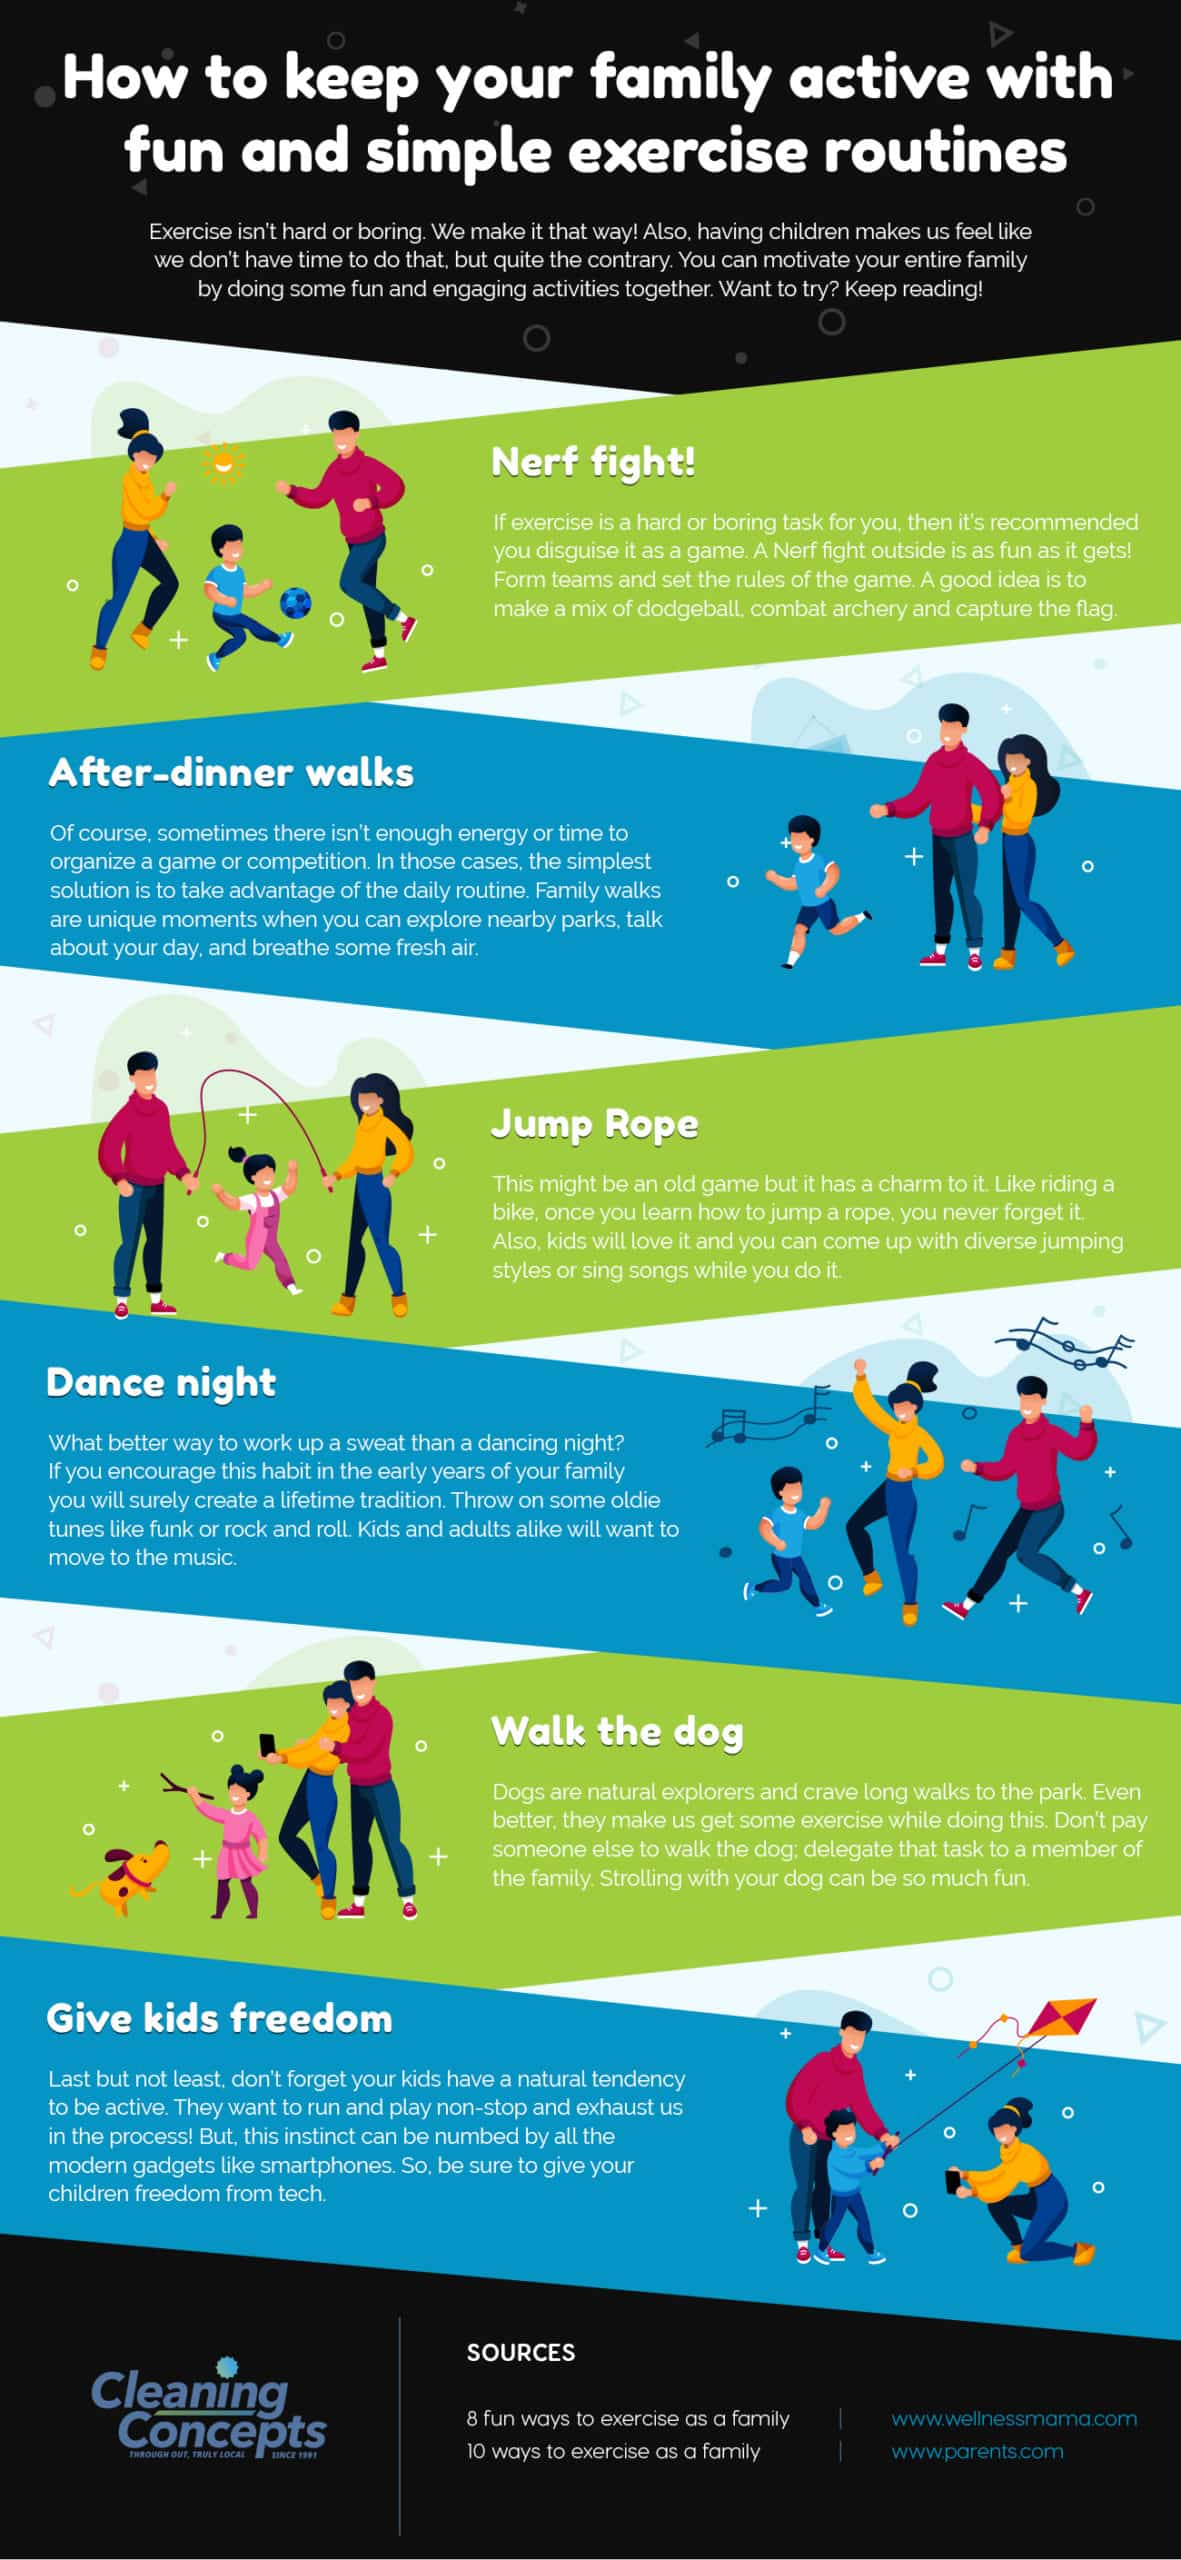 Cleaning Concepts - How to keep your family active with fun and simple exercise routines